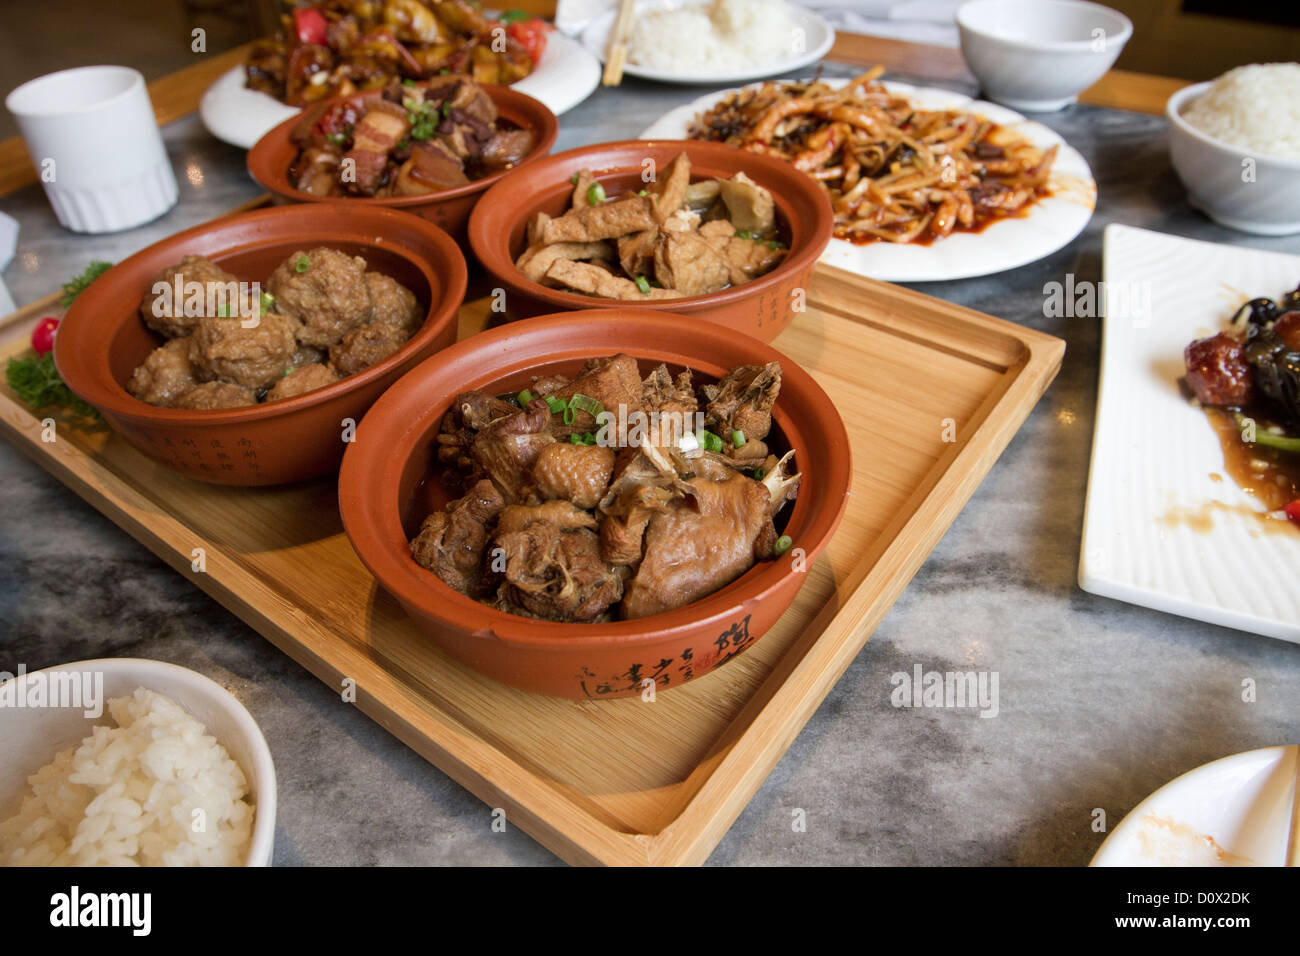 A traditional lunchtime meal served in a restaurant in Beijing China, consisting of duck and pork dishes with rice Stock Photo